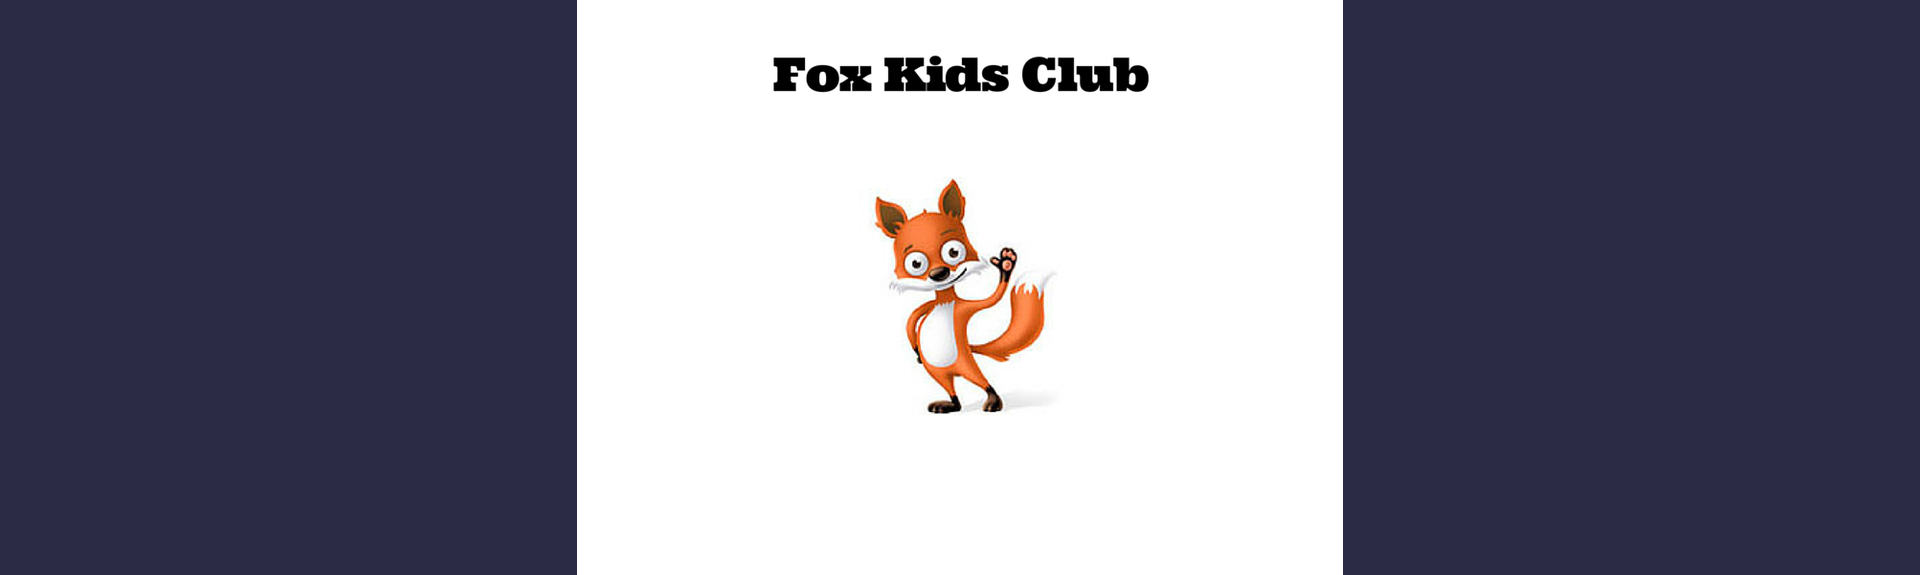 Kids Party Venue| Fox Kids Club Cobble Walk| To do with Kids